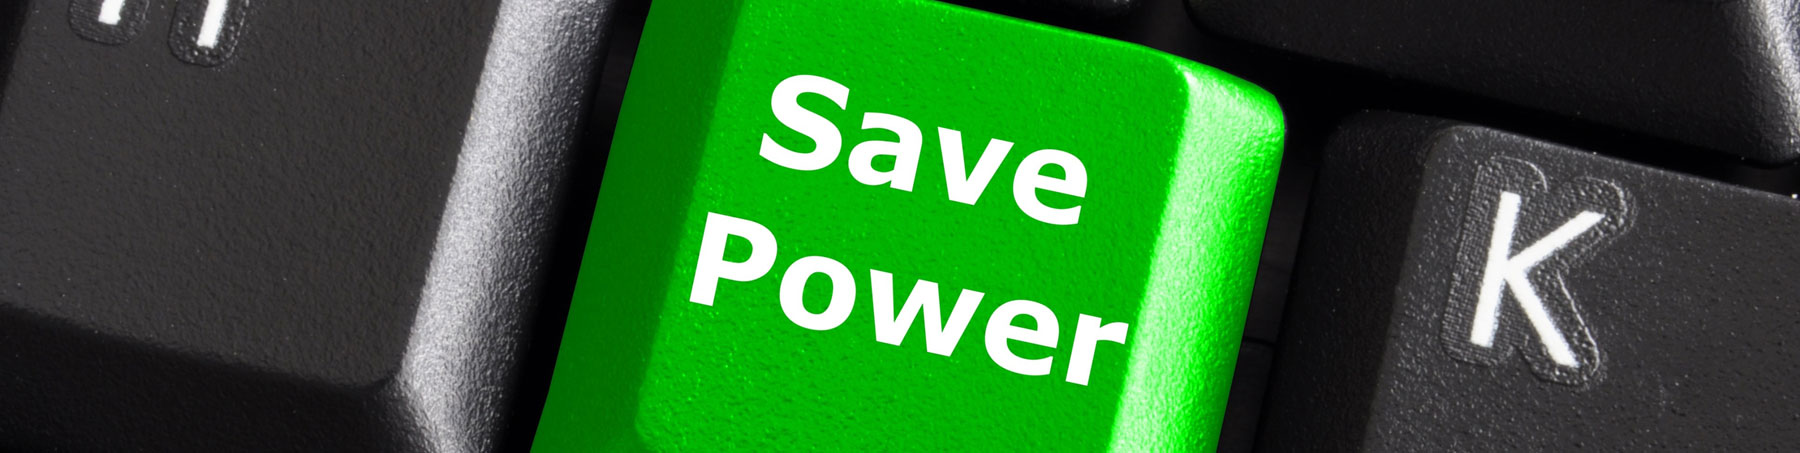 Energy savings opportunities scheme for leisure facilities